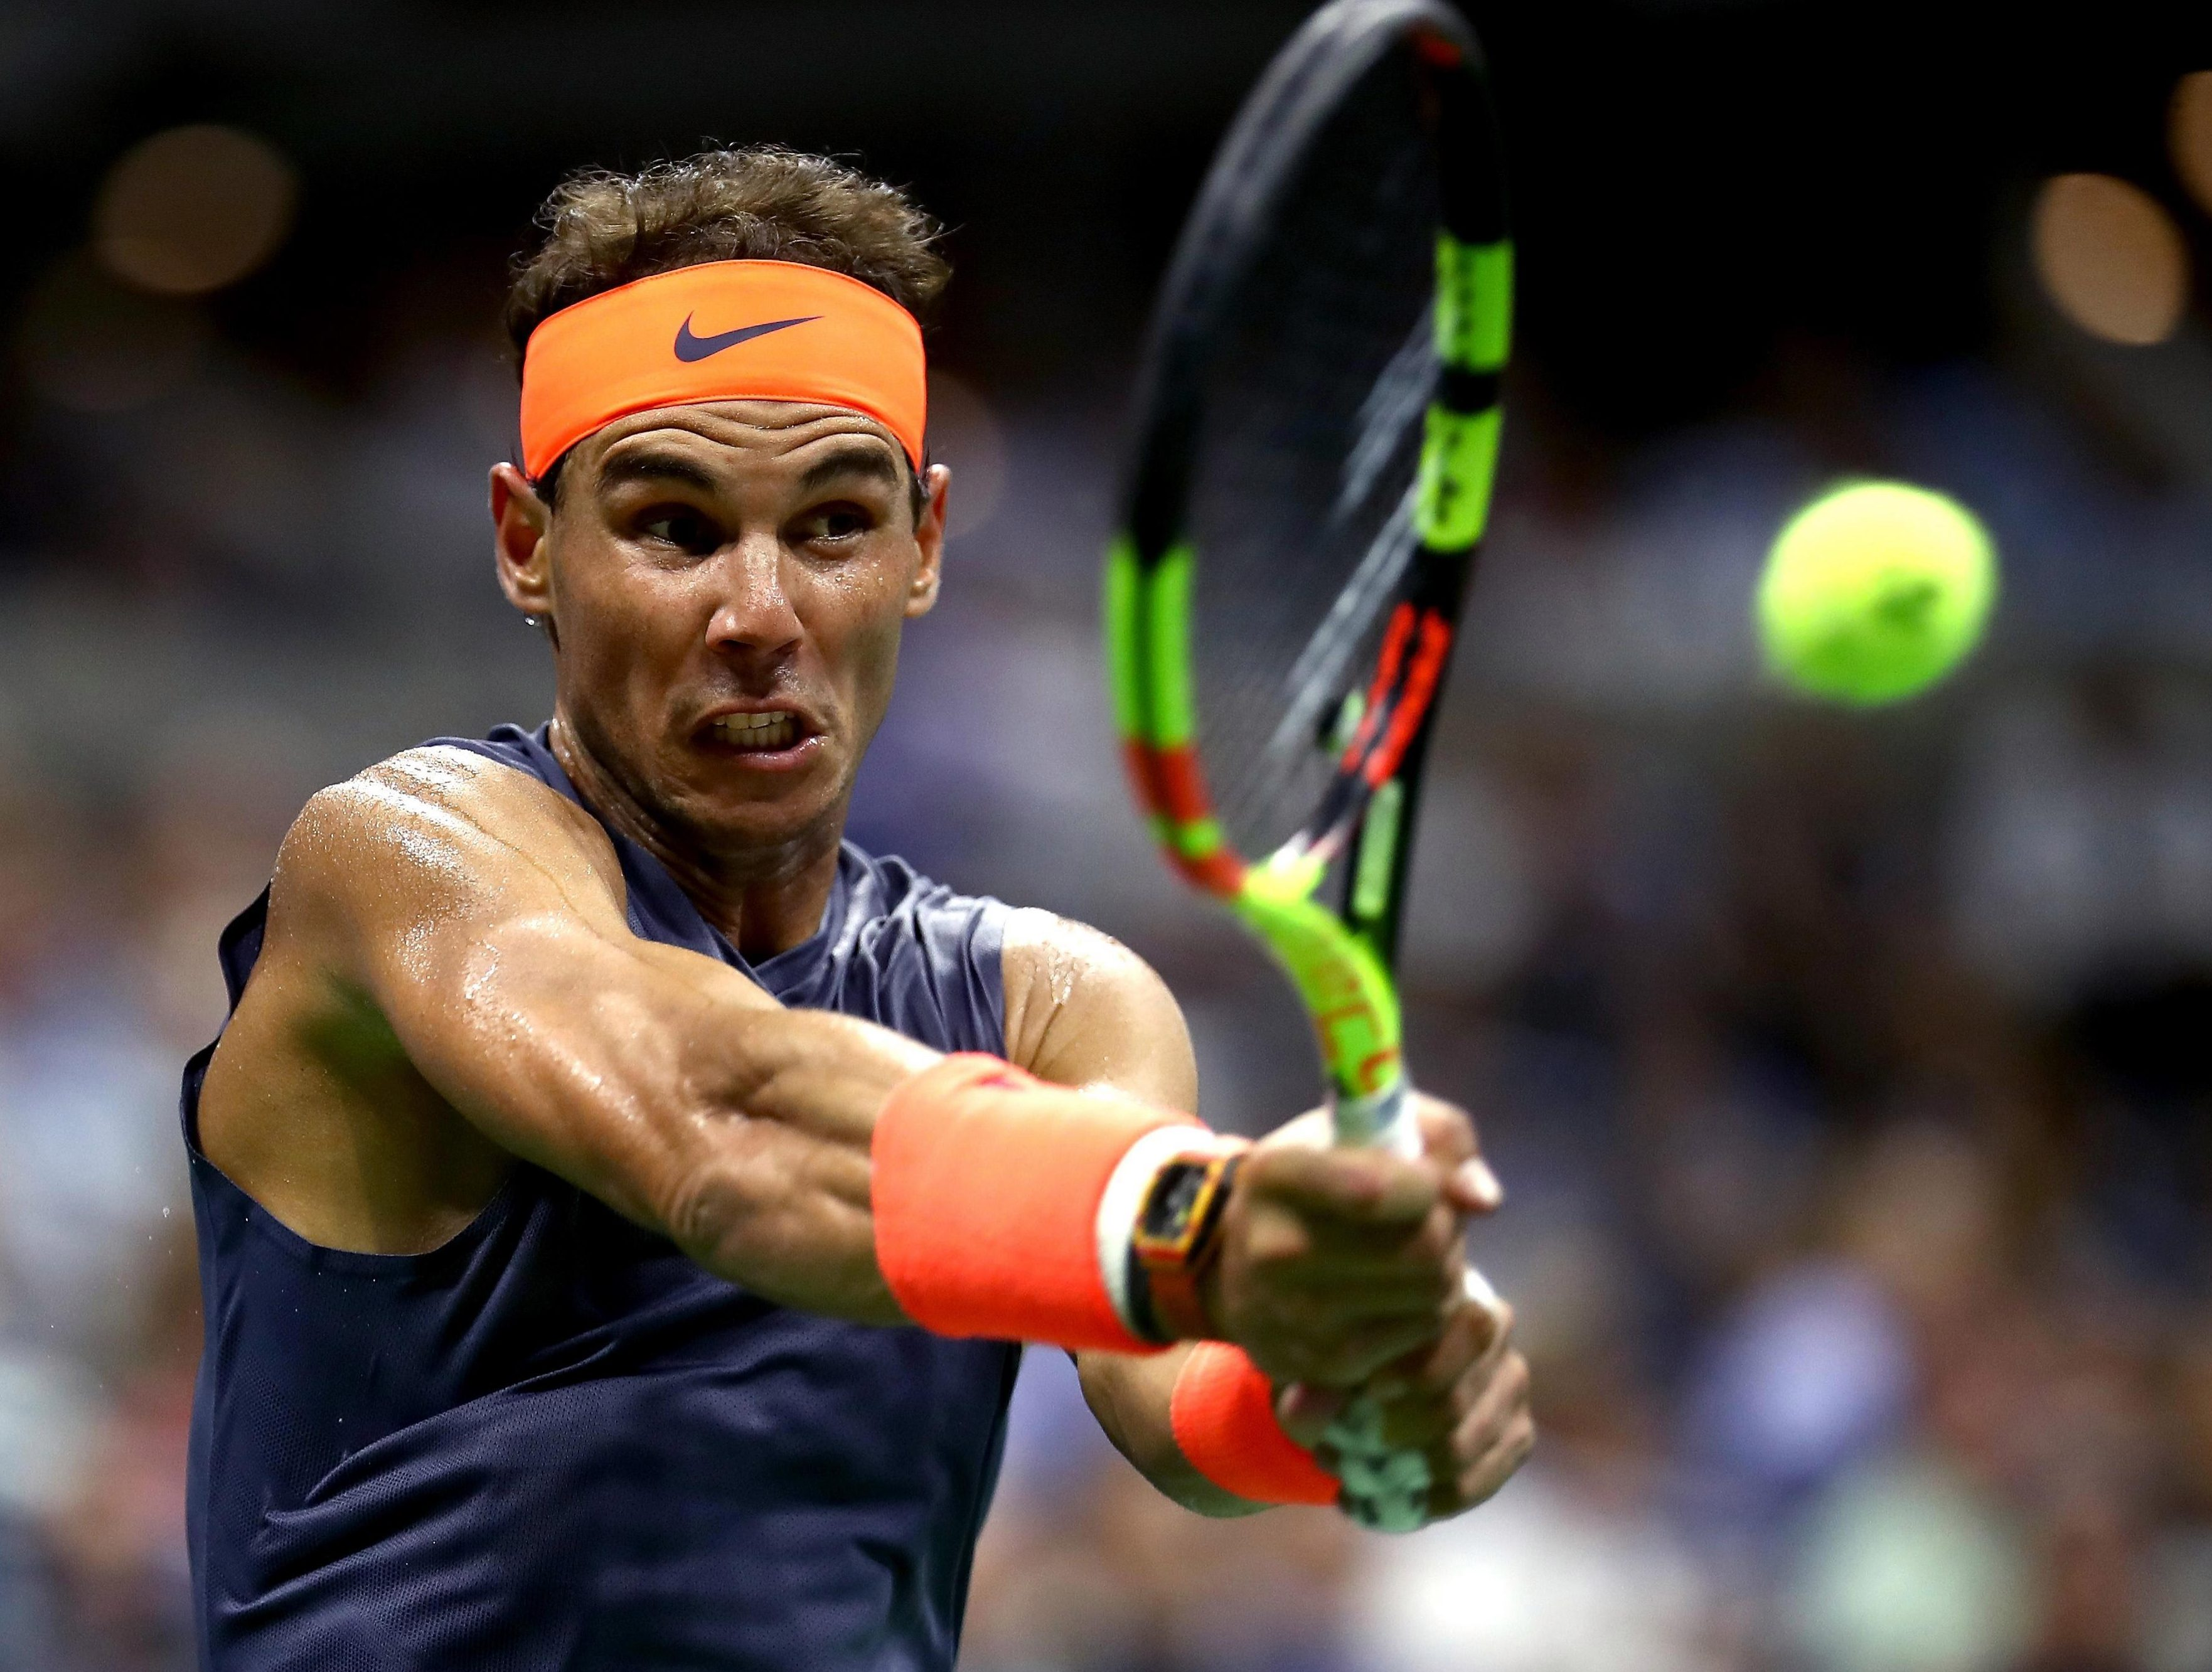 Rafa Nadal is only two games from winning back-to-back US Open titles